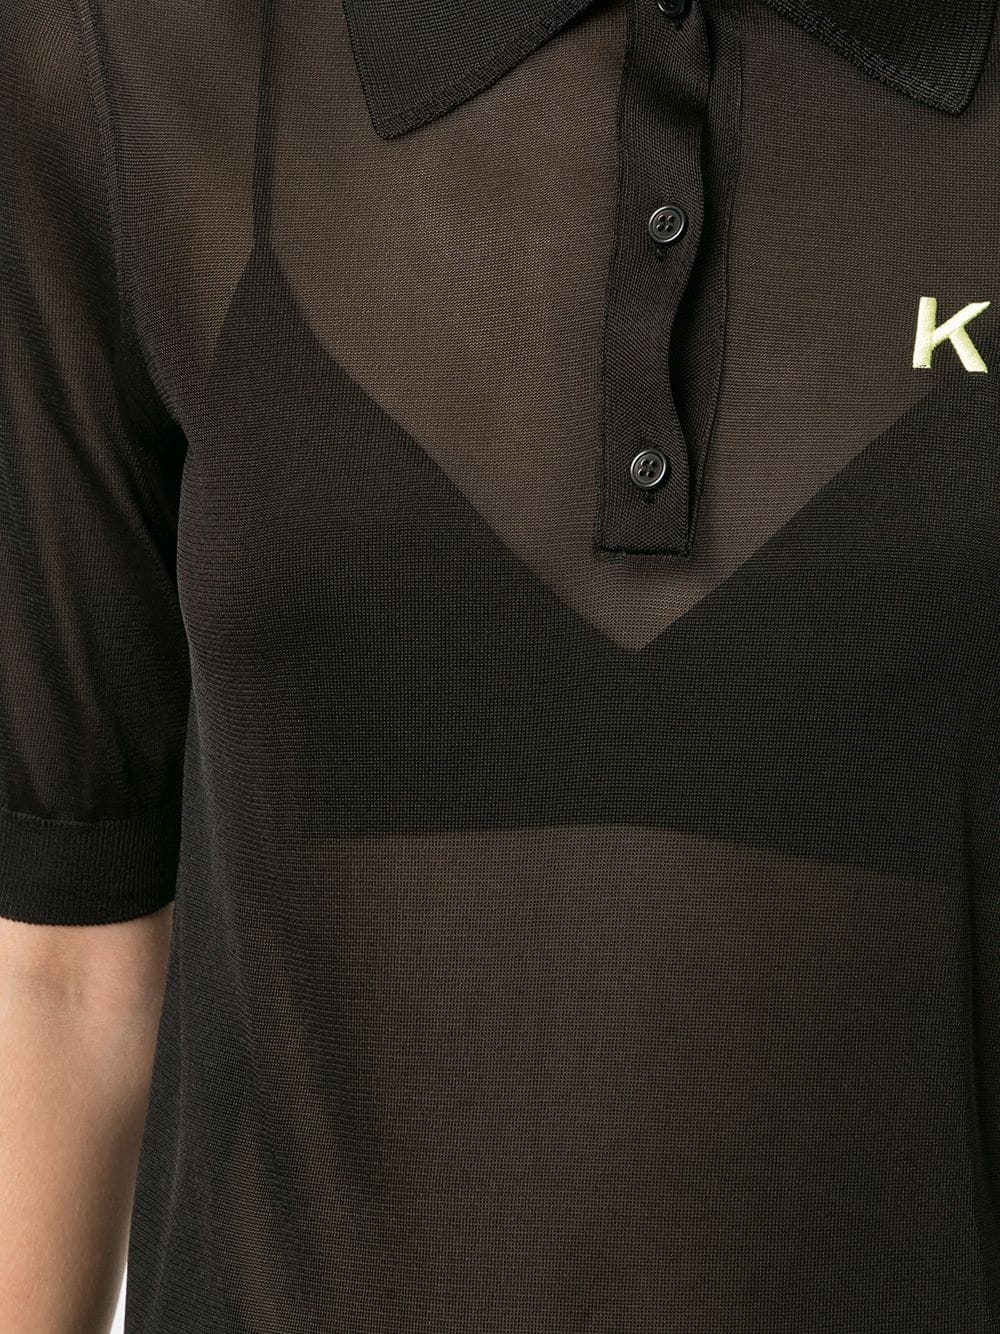 KWAIDAN EDITIONS WOMEN POLO SHIRT